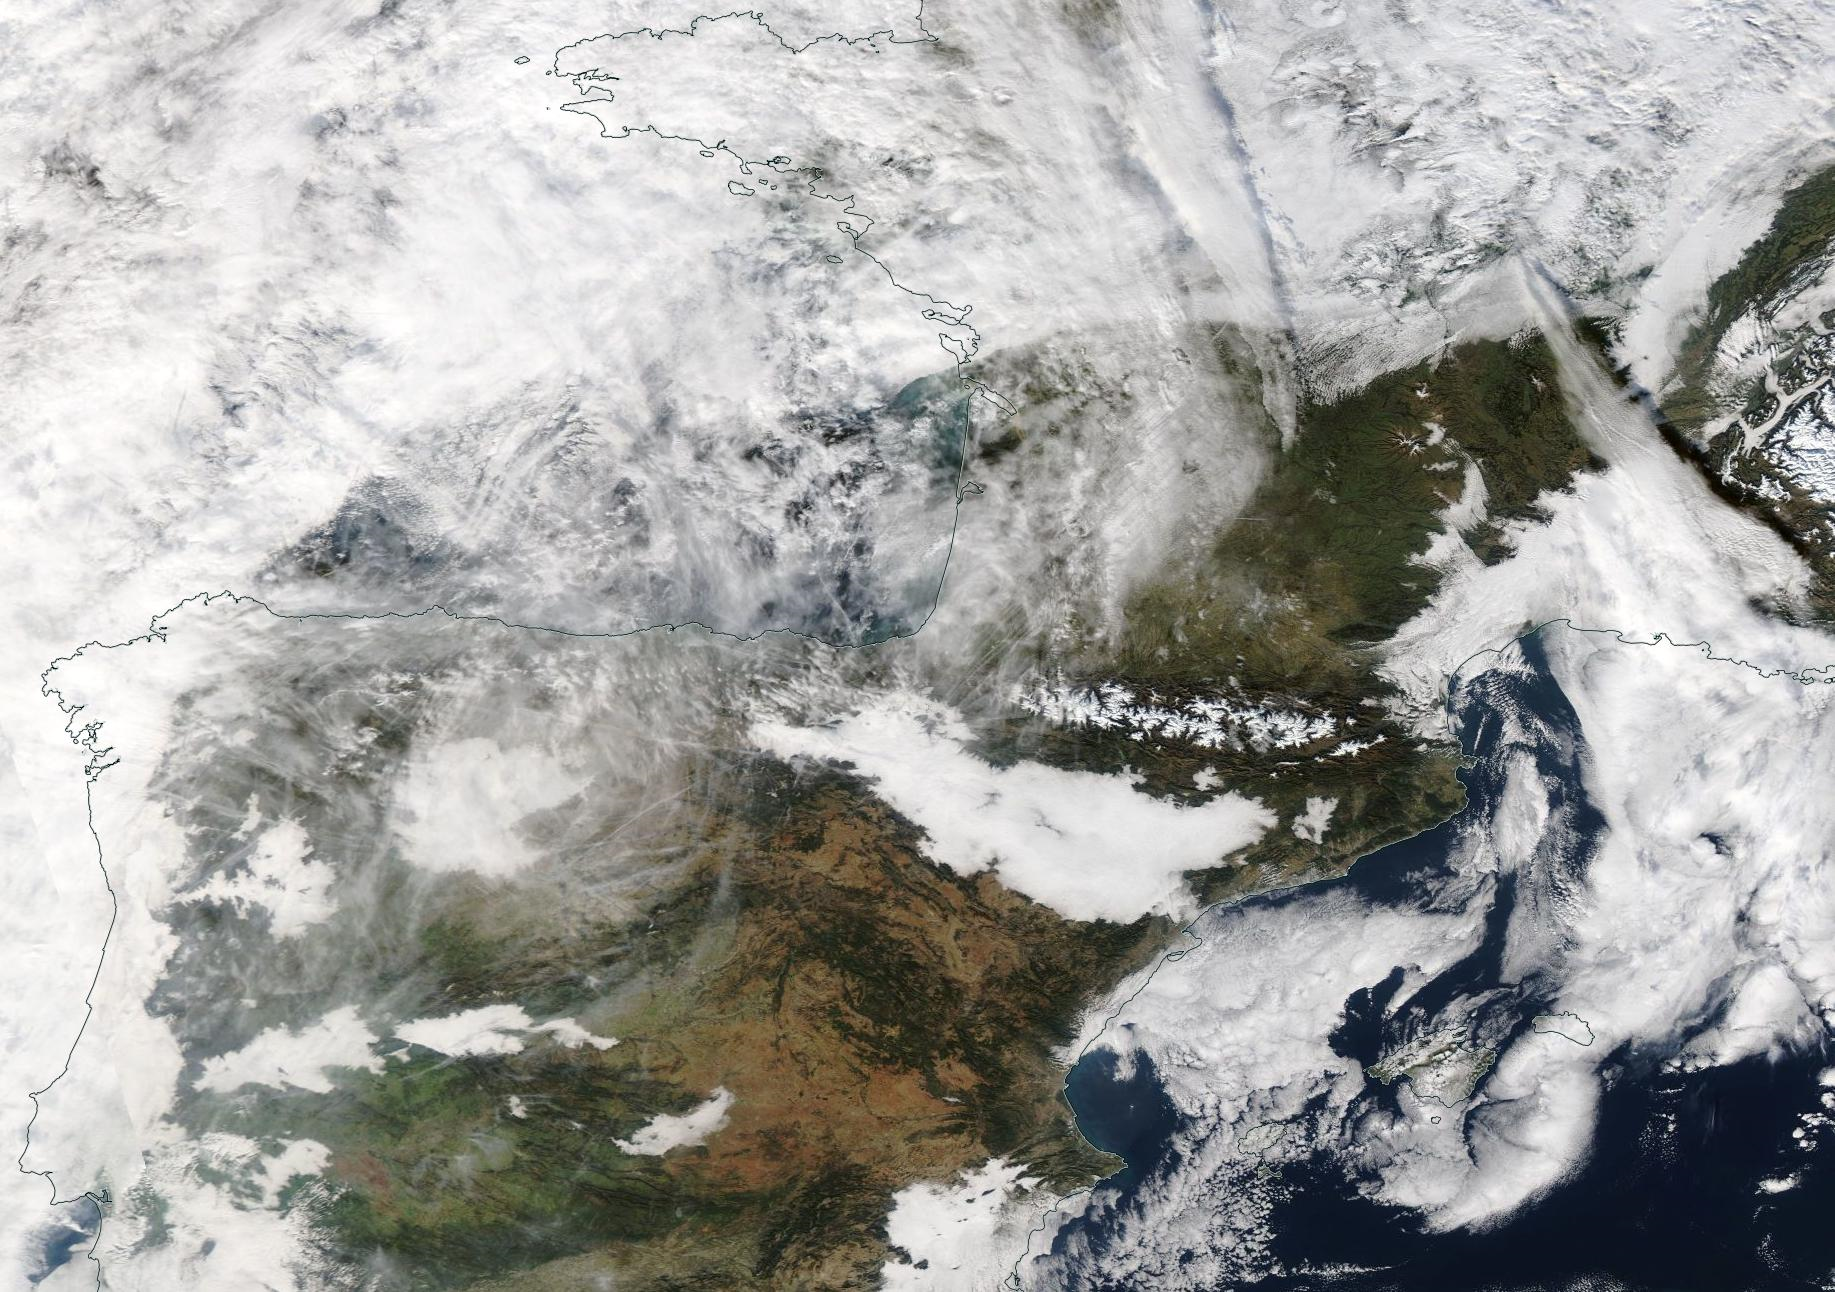 Northern Spain, Biscay, western France chemtrail, 2 Jan 2020. https://go.nasa.gov/2sGN7TY